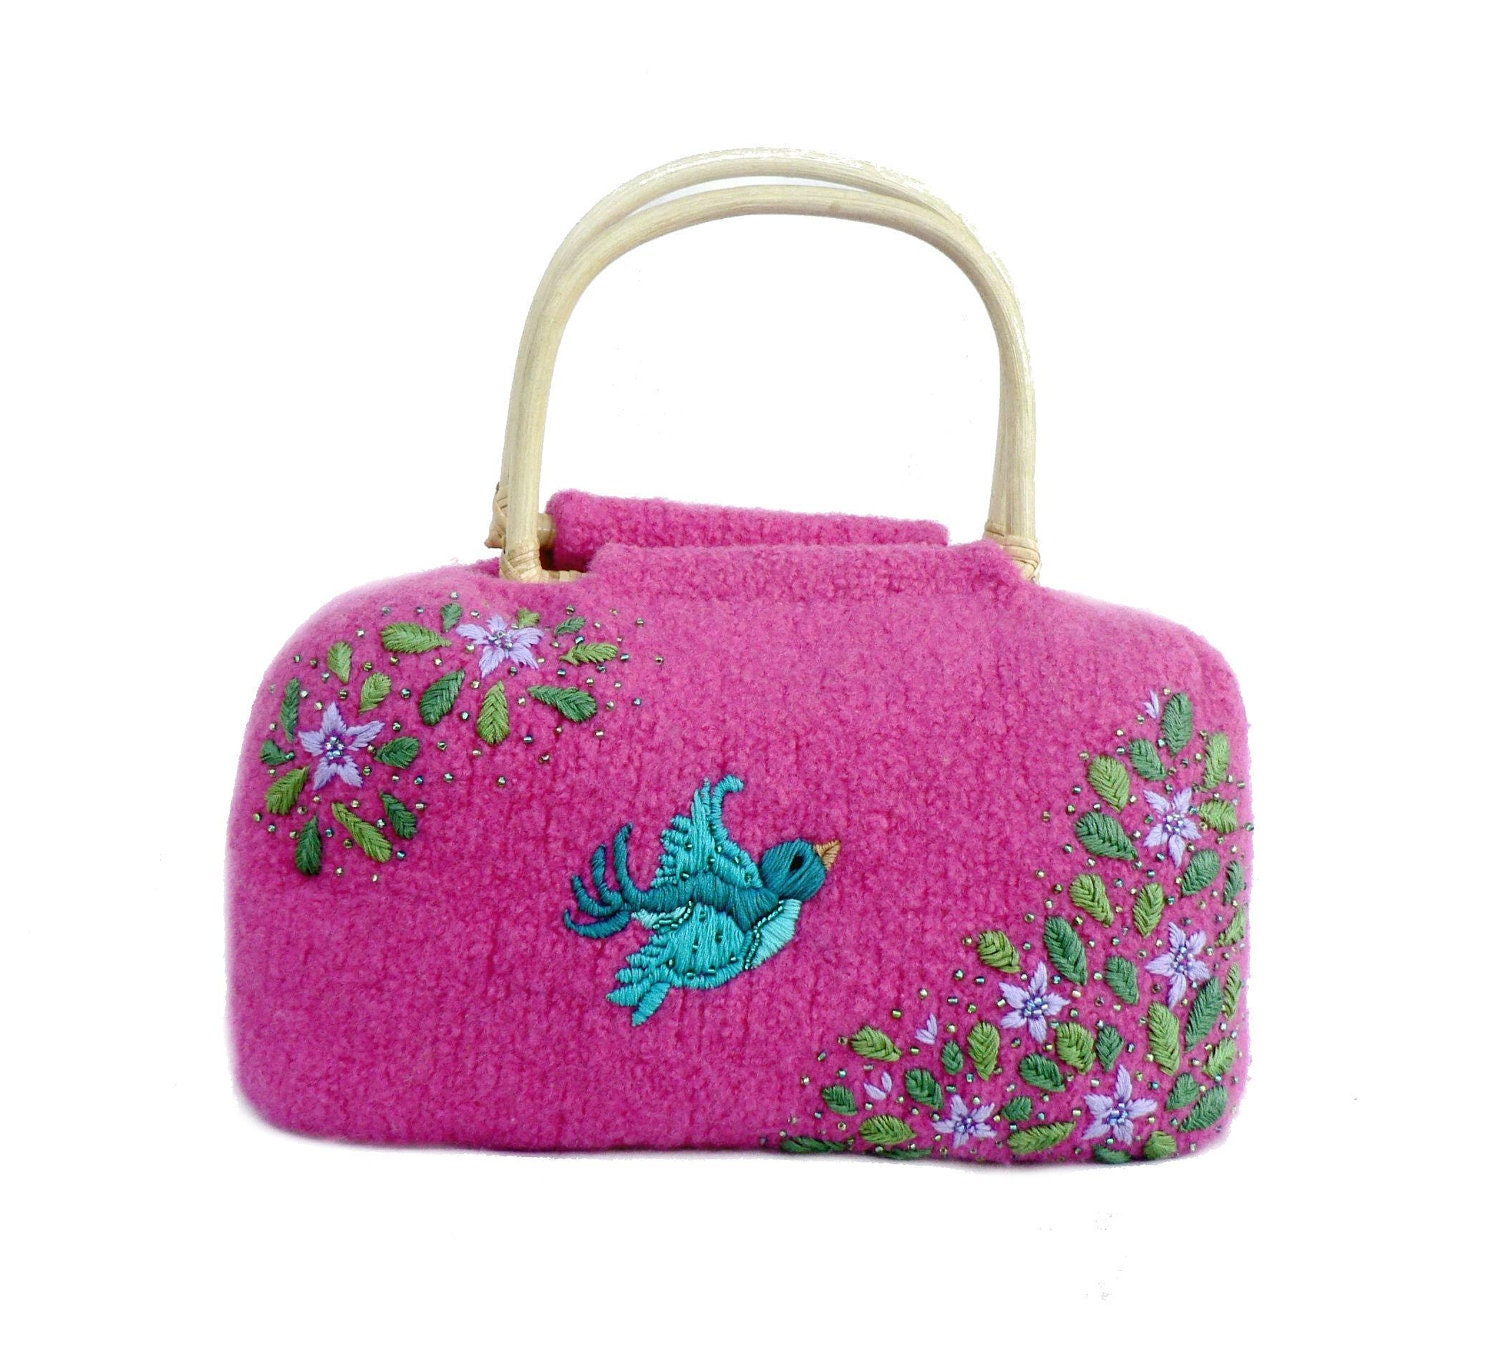 Fuchsia Felt Bag with Embroidery